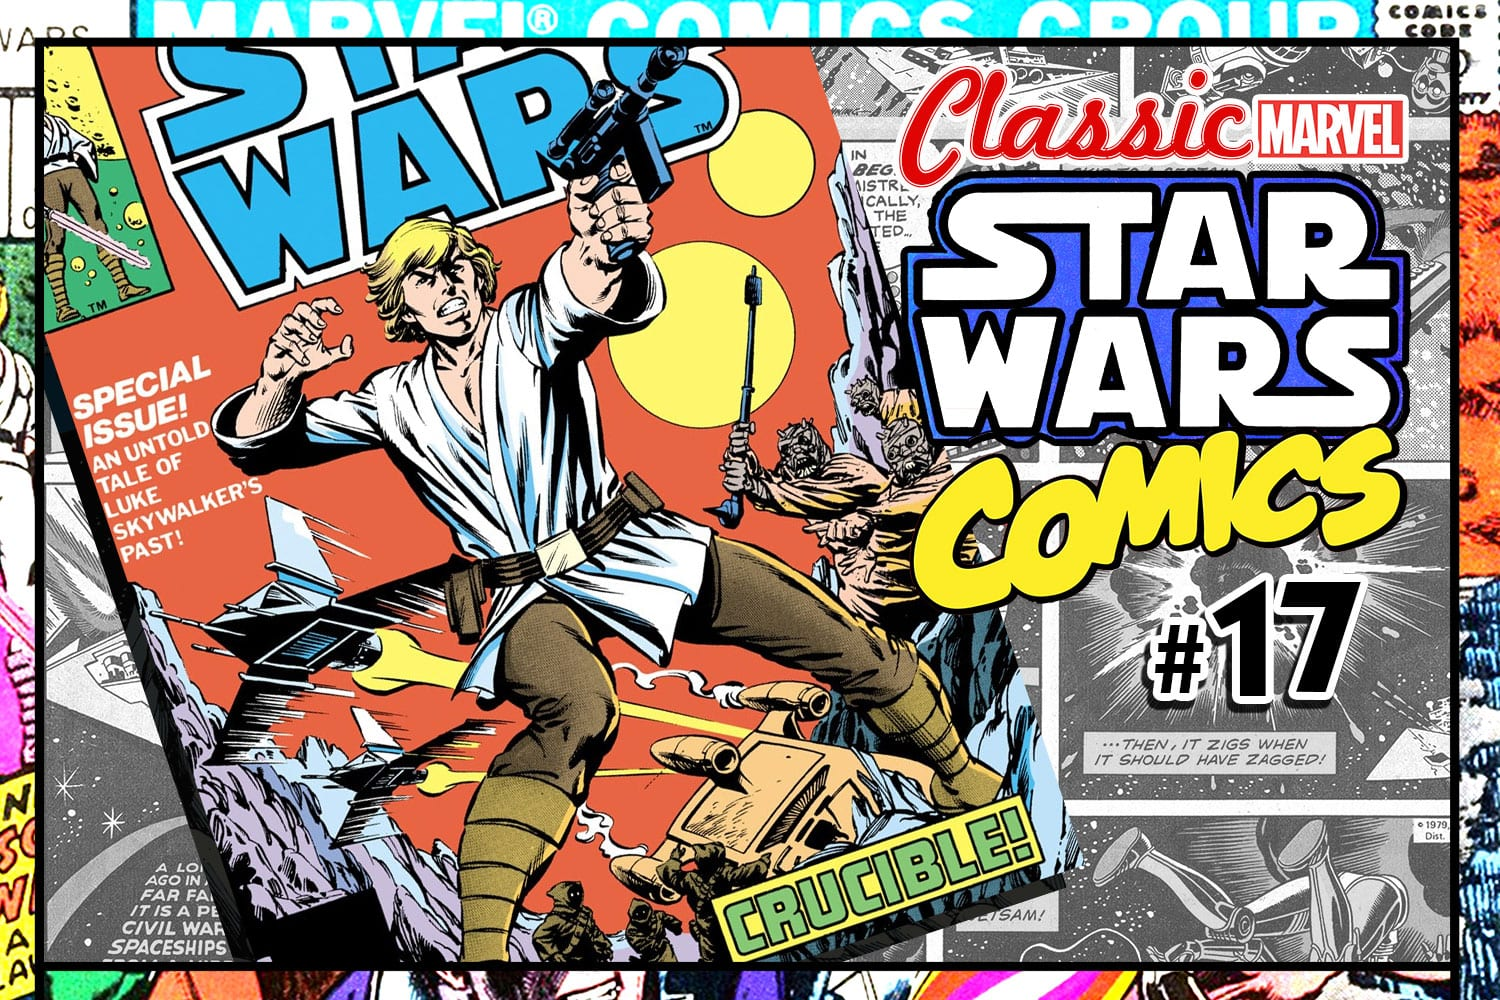 Classic Marvel Star Wars Comics #17: Special Issue - Crucible!